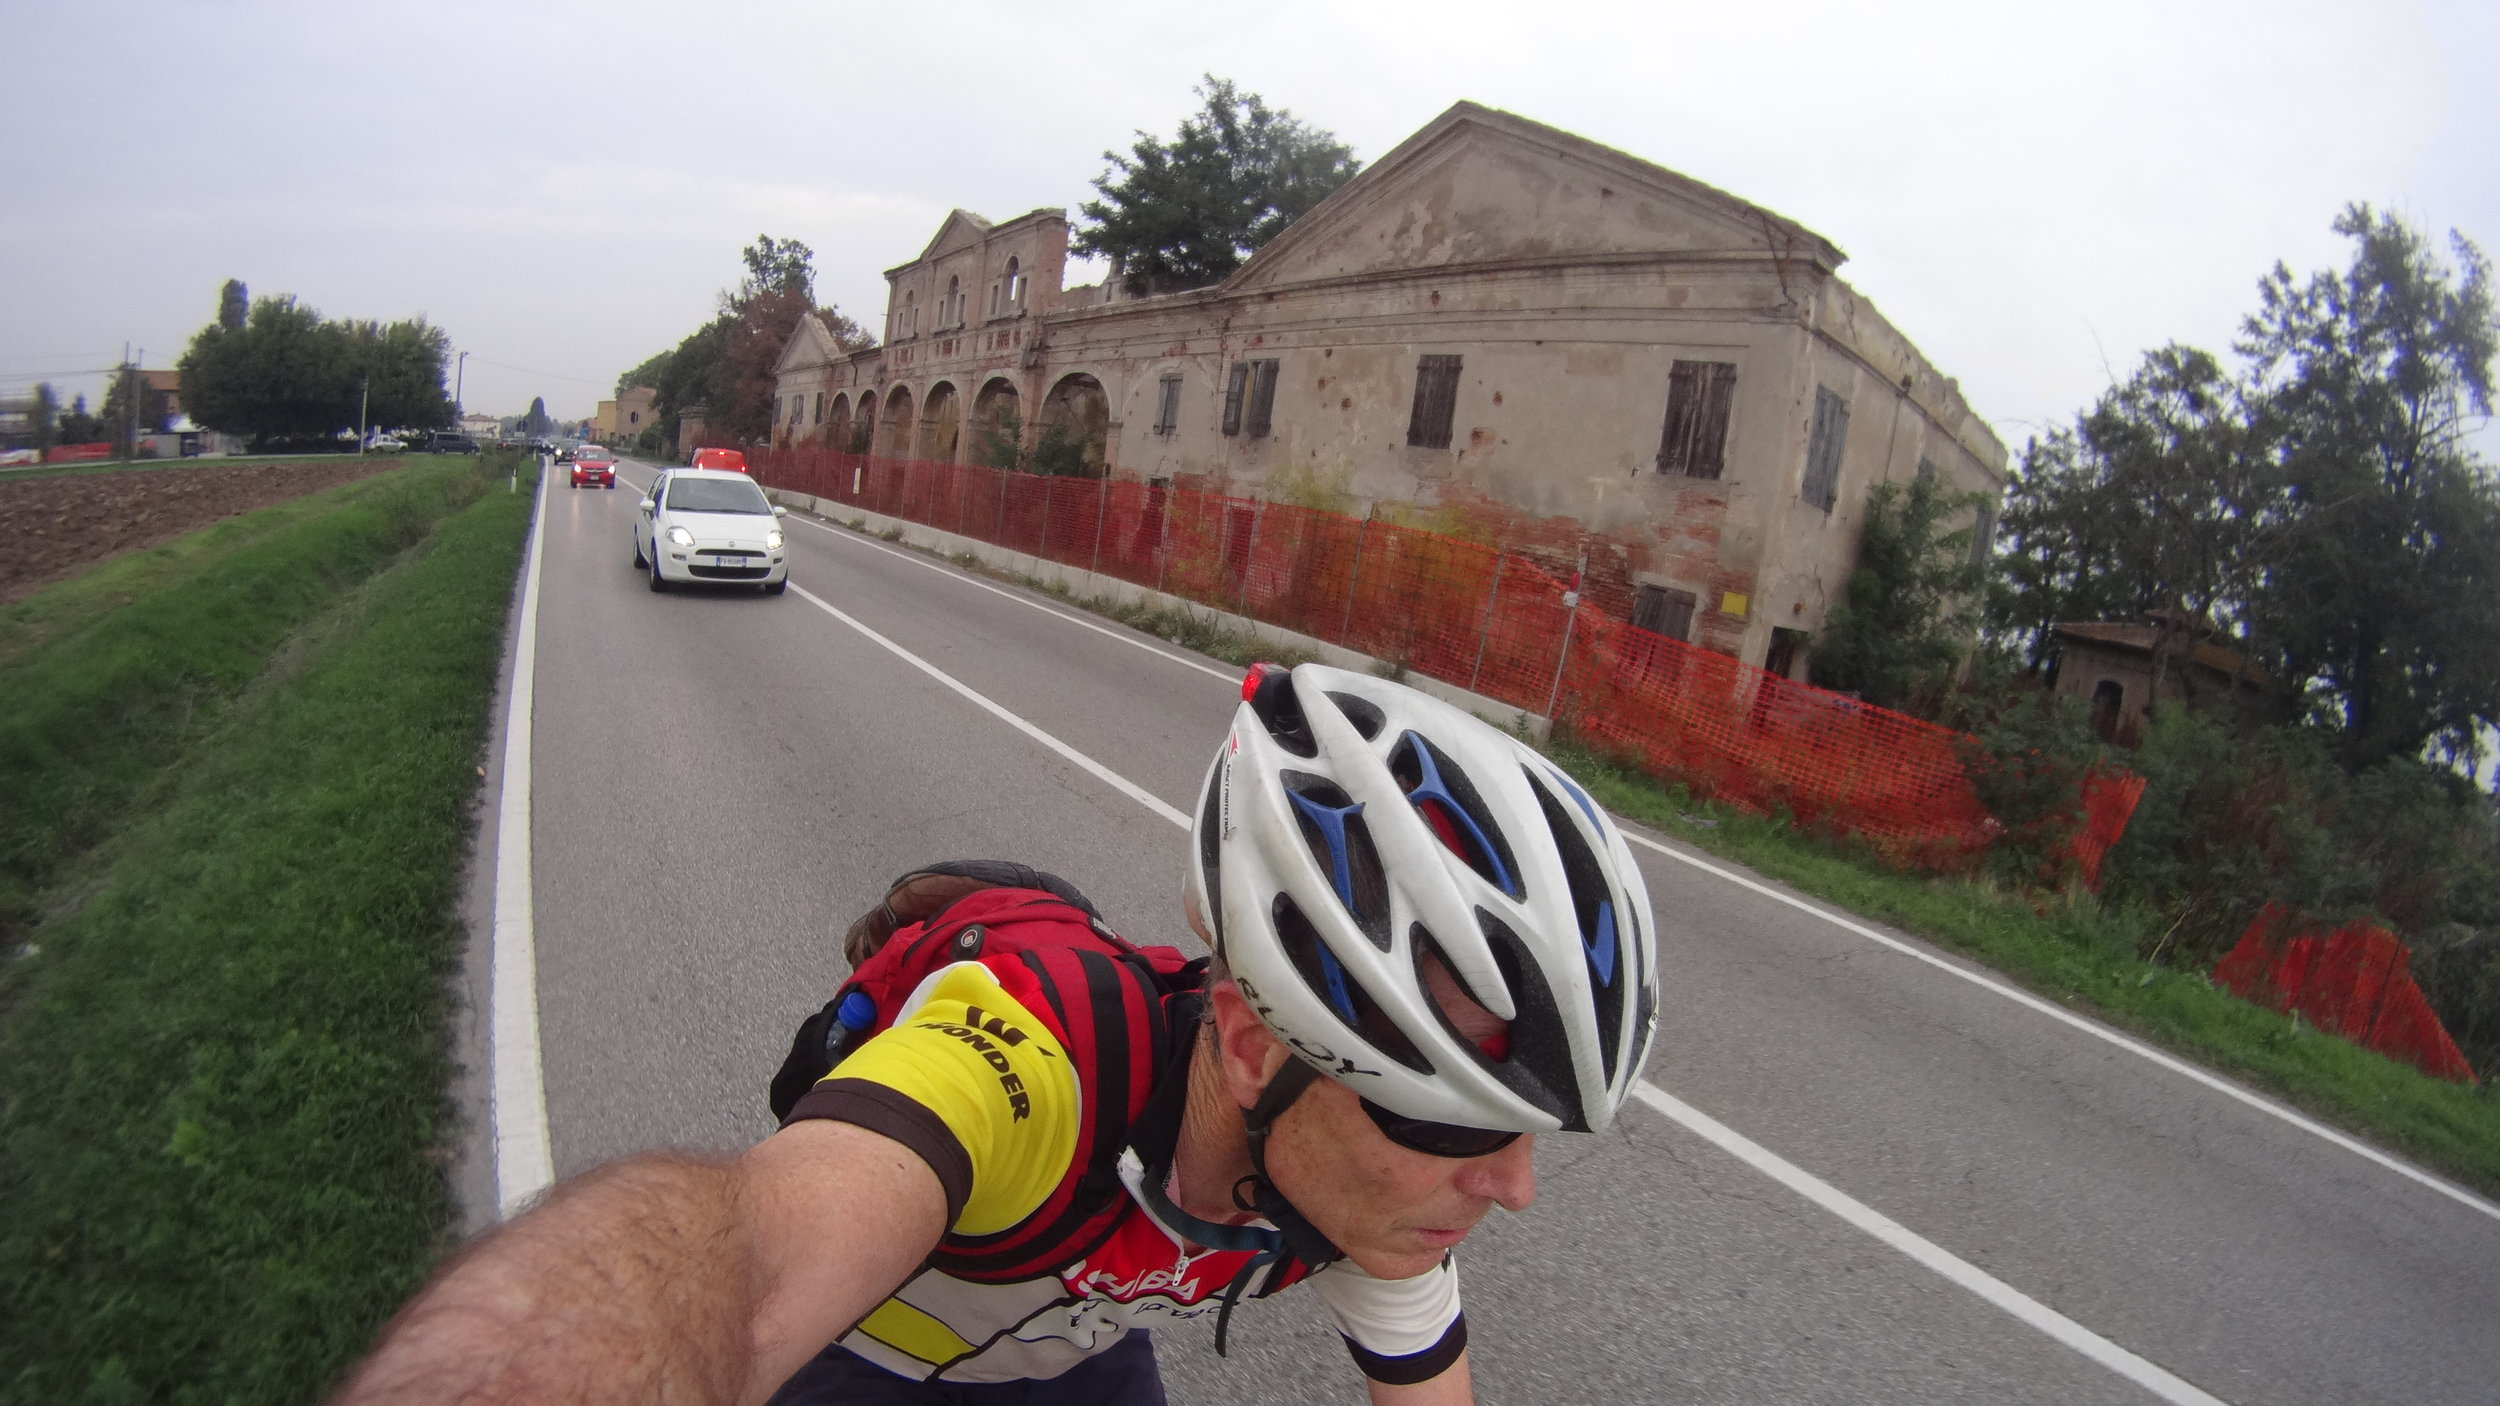 Cycling on the flat, scenic road back to Bologna